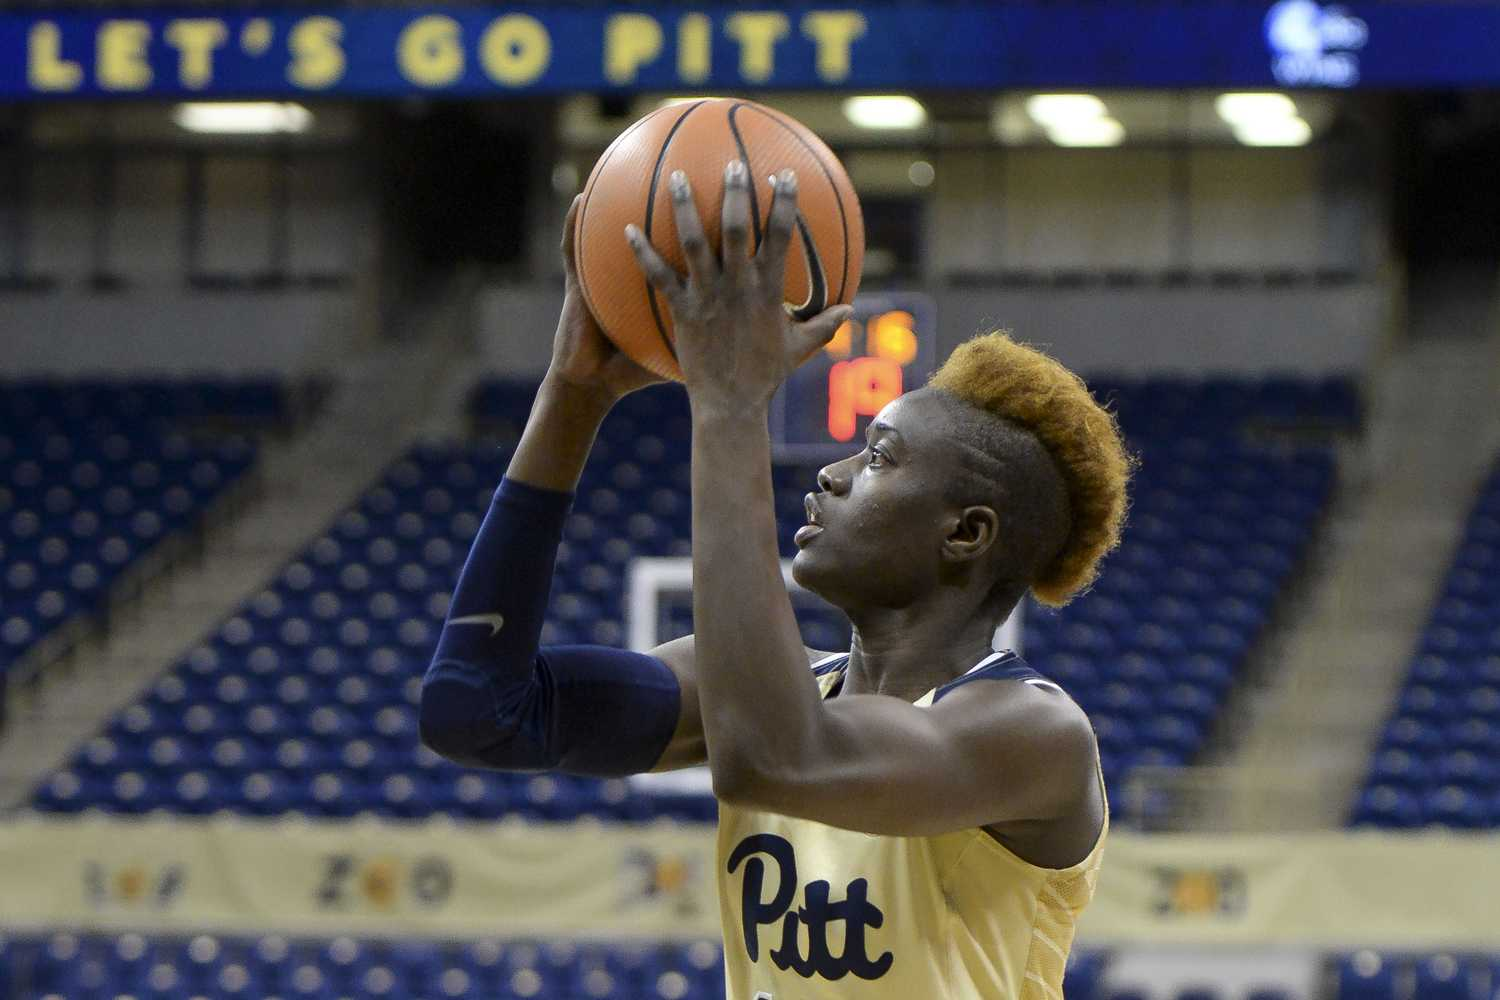 Yacine Diop (12), redshirt junior and forward for Pitt's women's basketball team, scored 16 points in Monday night's 62-53 loss to Syracuse at home. (Photo by Thomas Yang | Visual Editor)